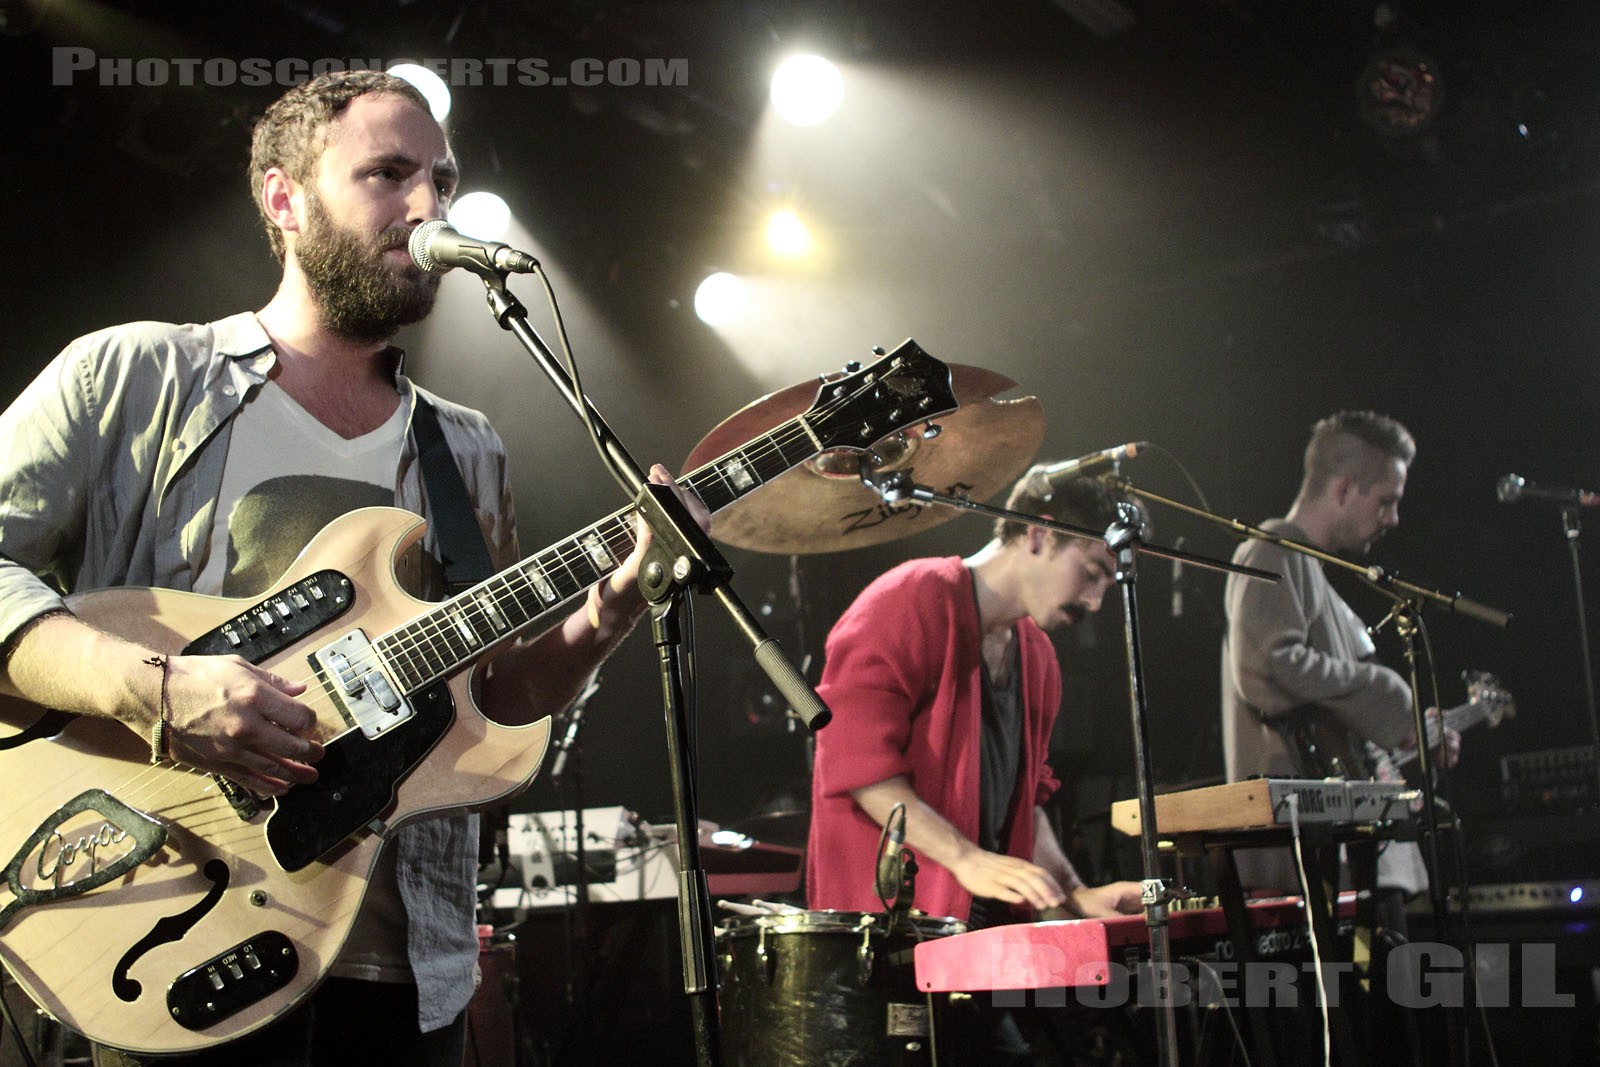 LOCAL NATIVES - 2009-10-15 - PARIS - La Maroquinerie